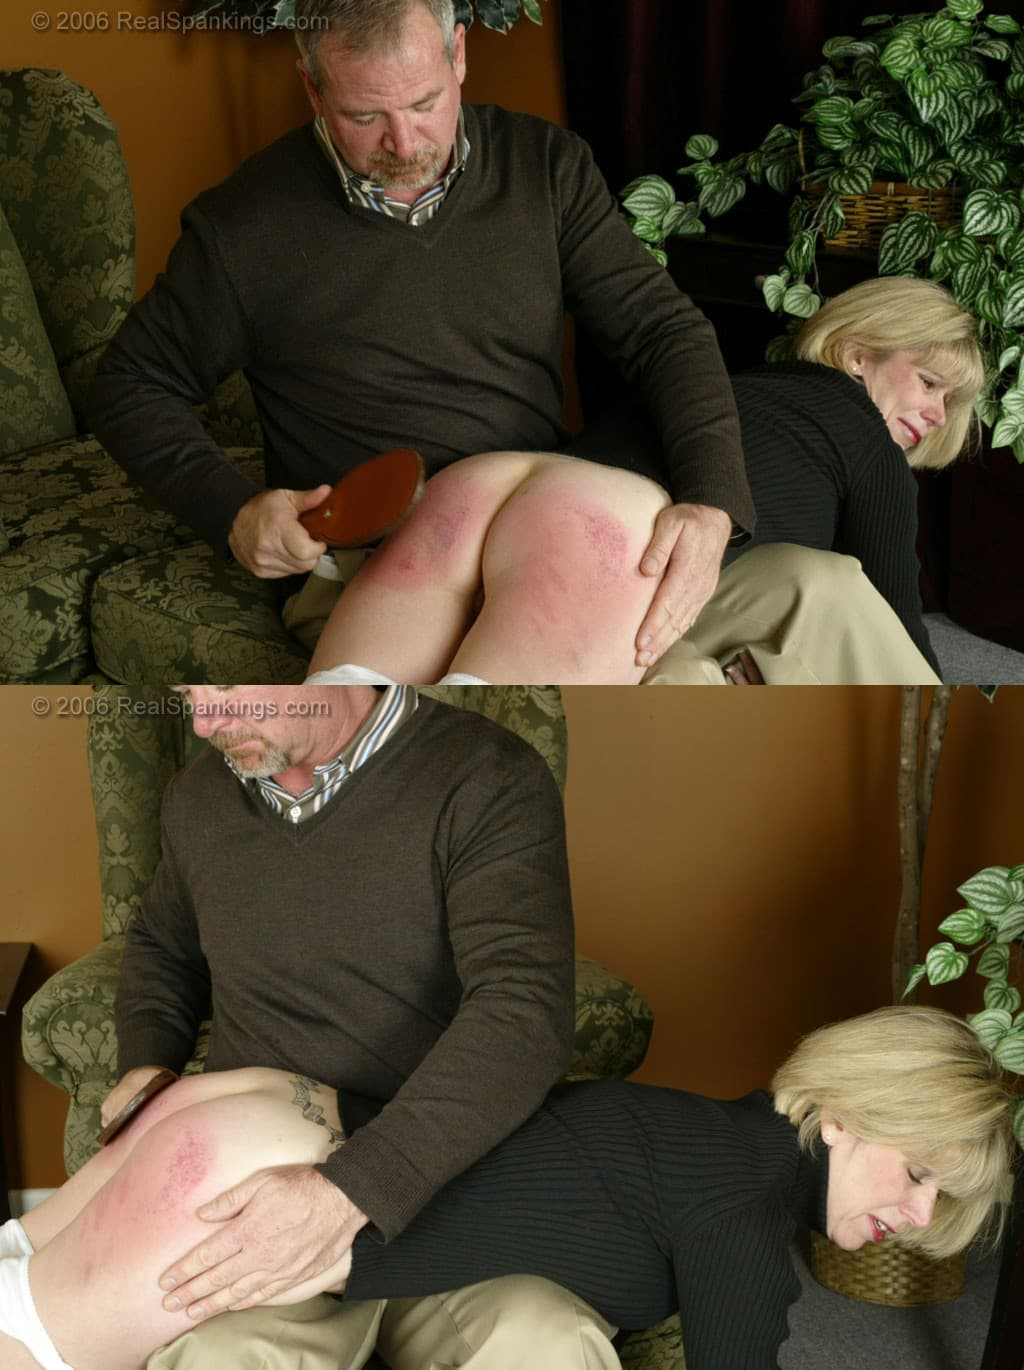 Real Spankings – MP4/SD – Elizabeth: Punished In The Living Room (Part 2) (Release date: Apr 08, 2021)